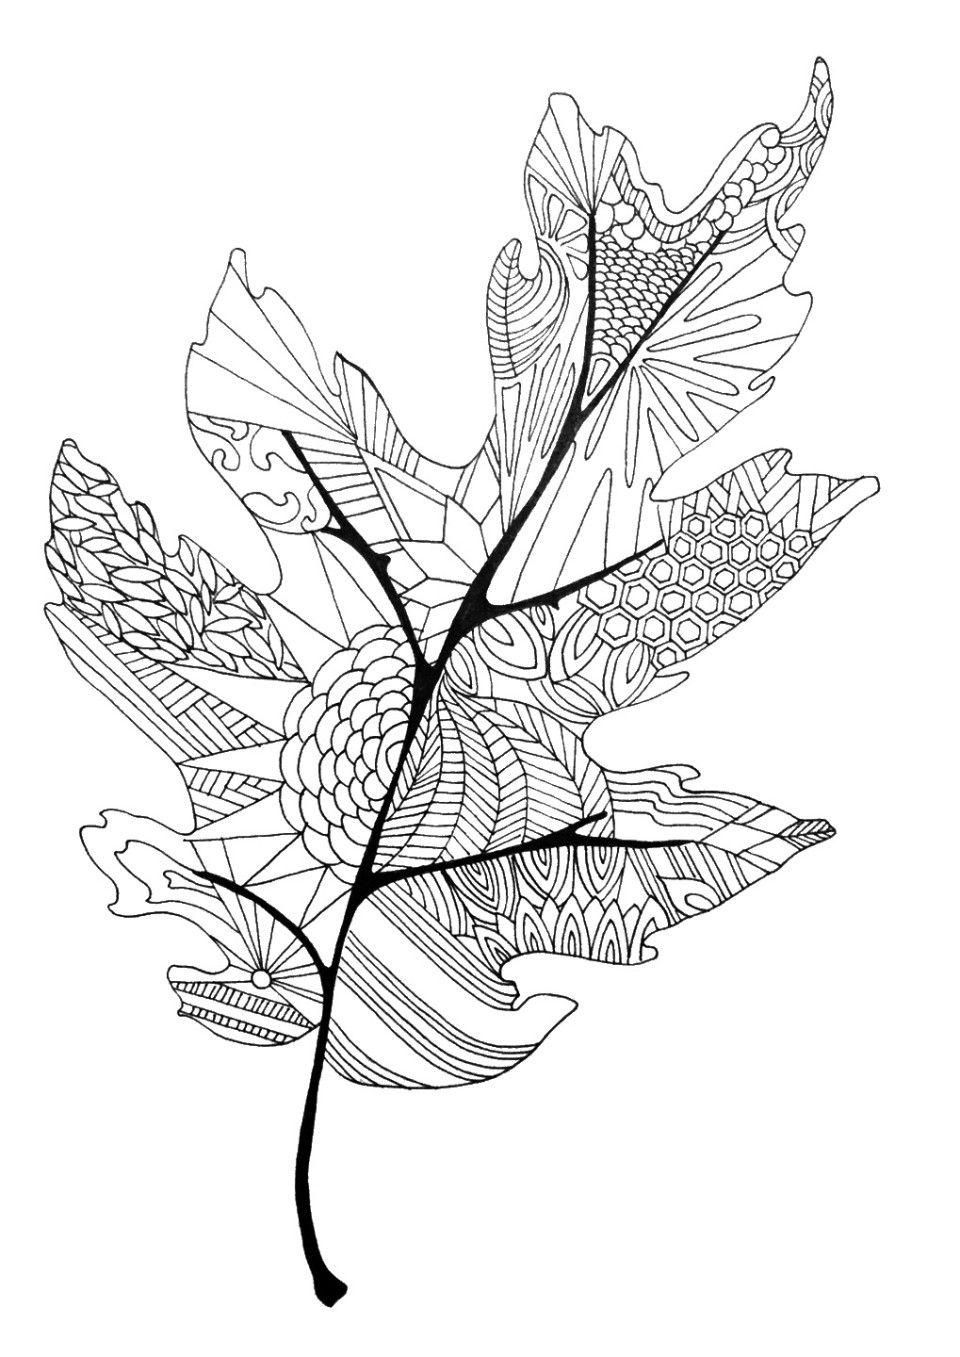 10 Coloring Page Leaf Fall Leaves Coloring Pages Leaf Coloring Page Fall Coloring Pages